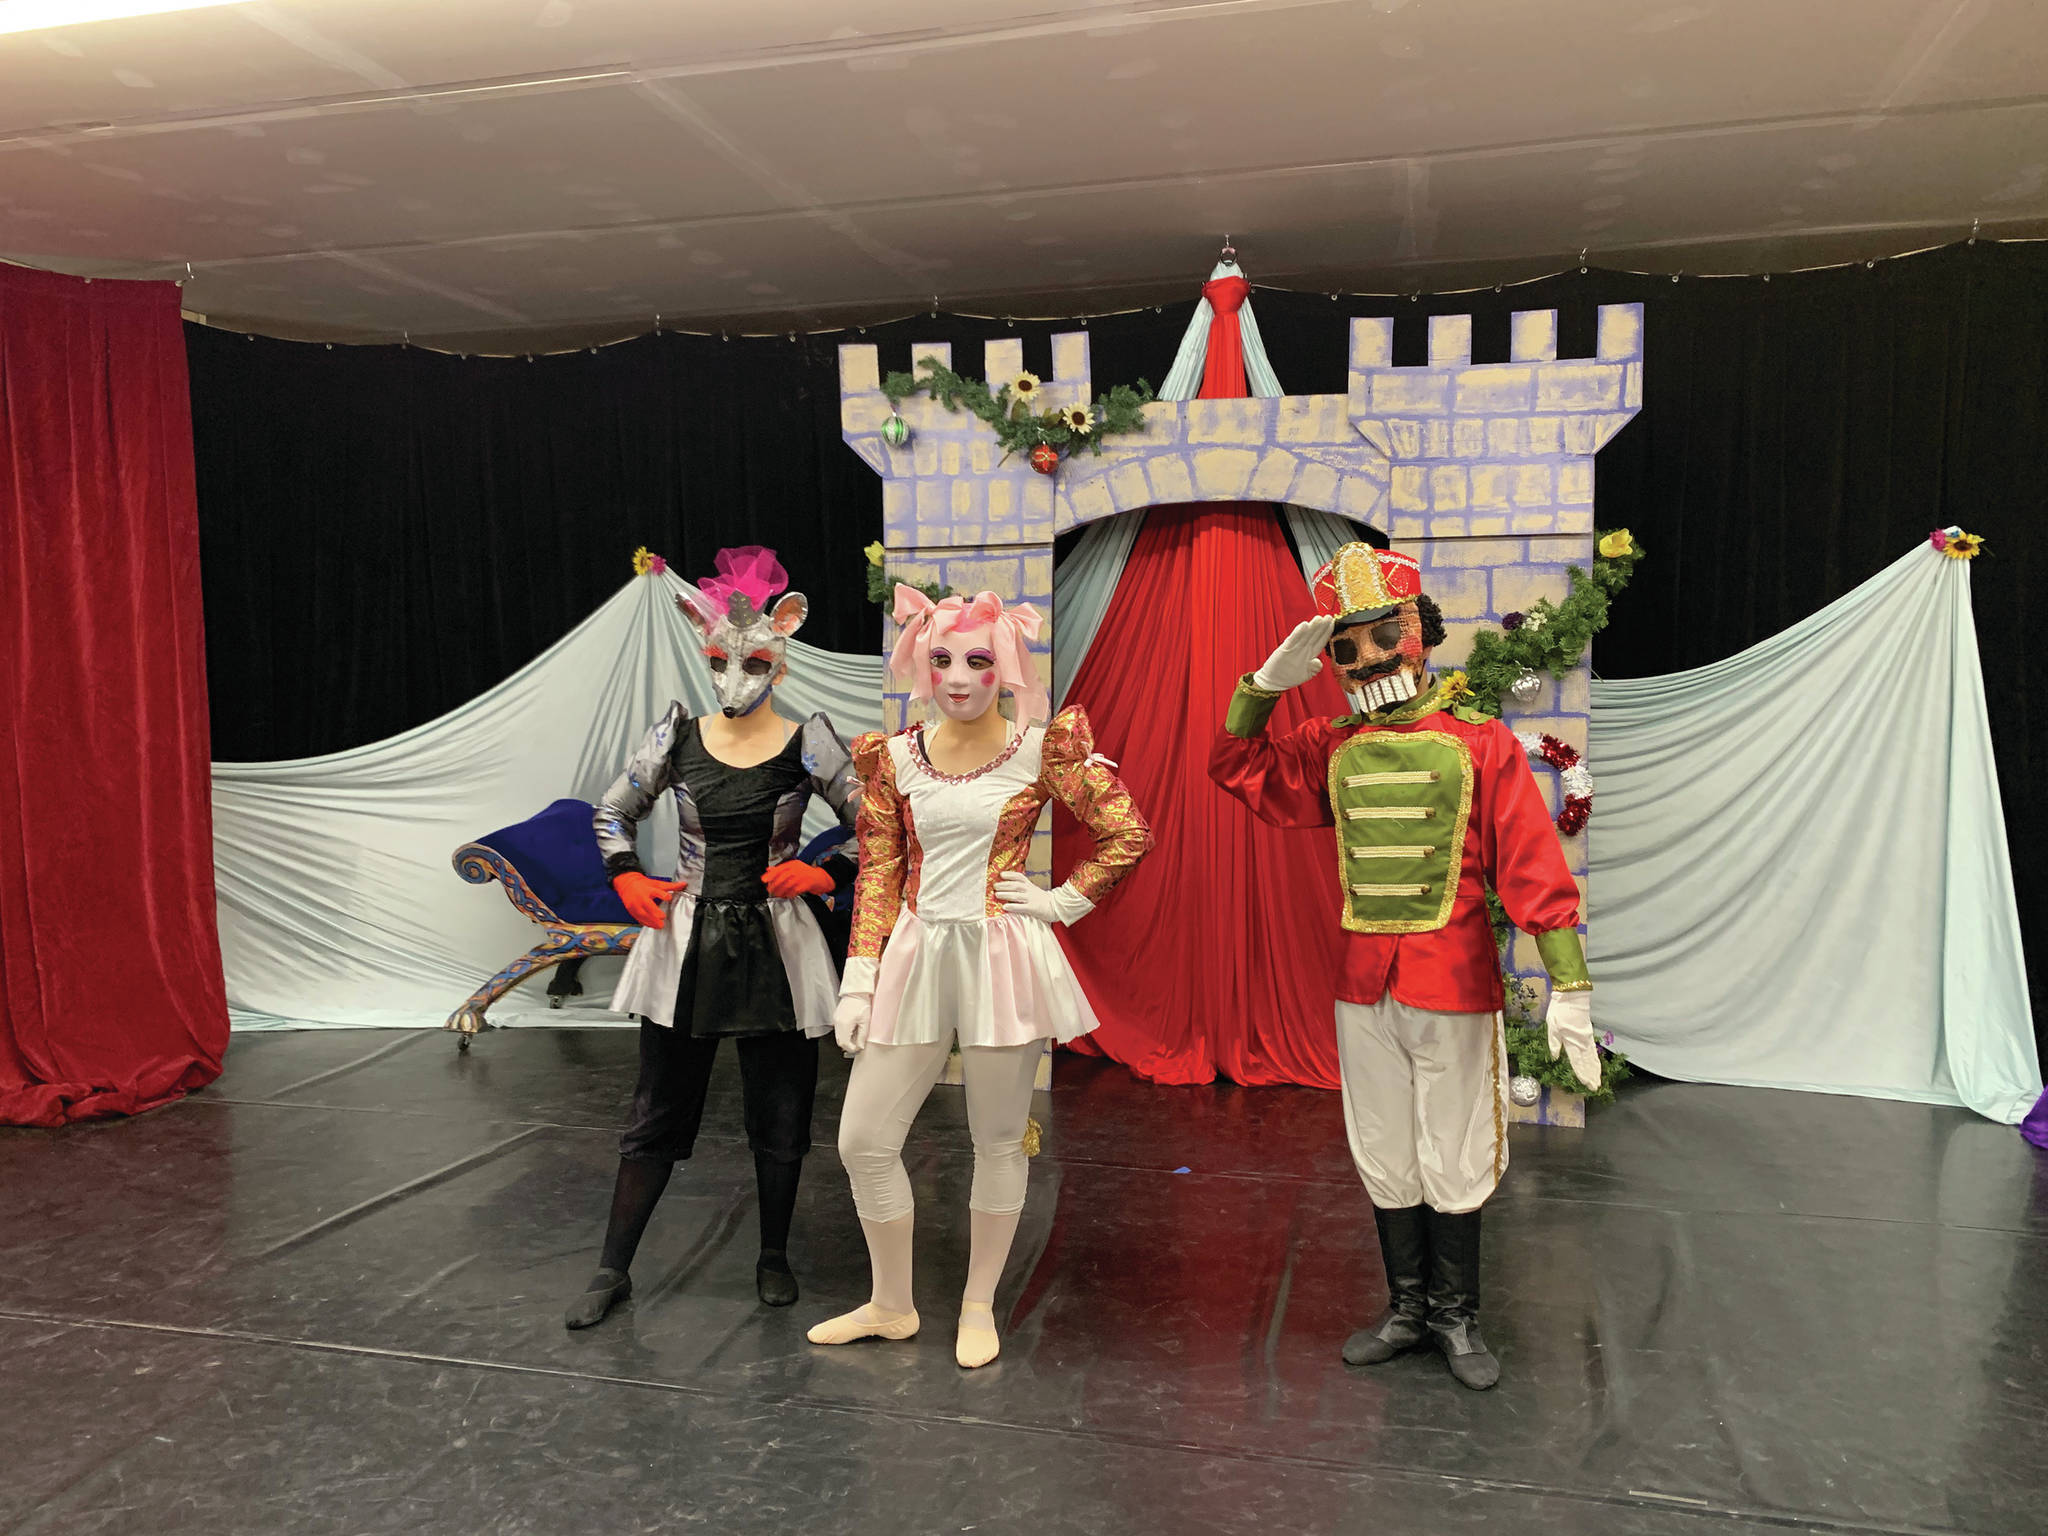 """Aletra Miller, Alexis Miller and Bryson Brewer-Dell on Dec. 3, 2020, pose for a photo in the """"Petite Nutcracker Ballet"""" at the Homer Nutcracker Productions' black box theater in the Wildberry Building in Homer, Alaska. (Photo by Jennifer Norton)"""